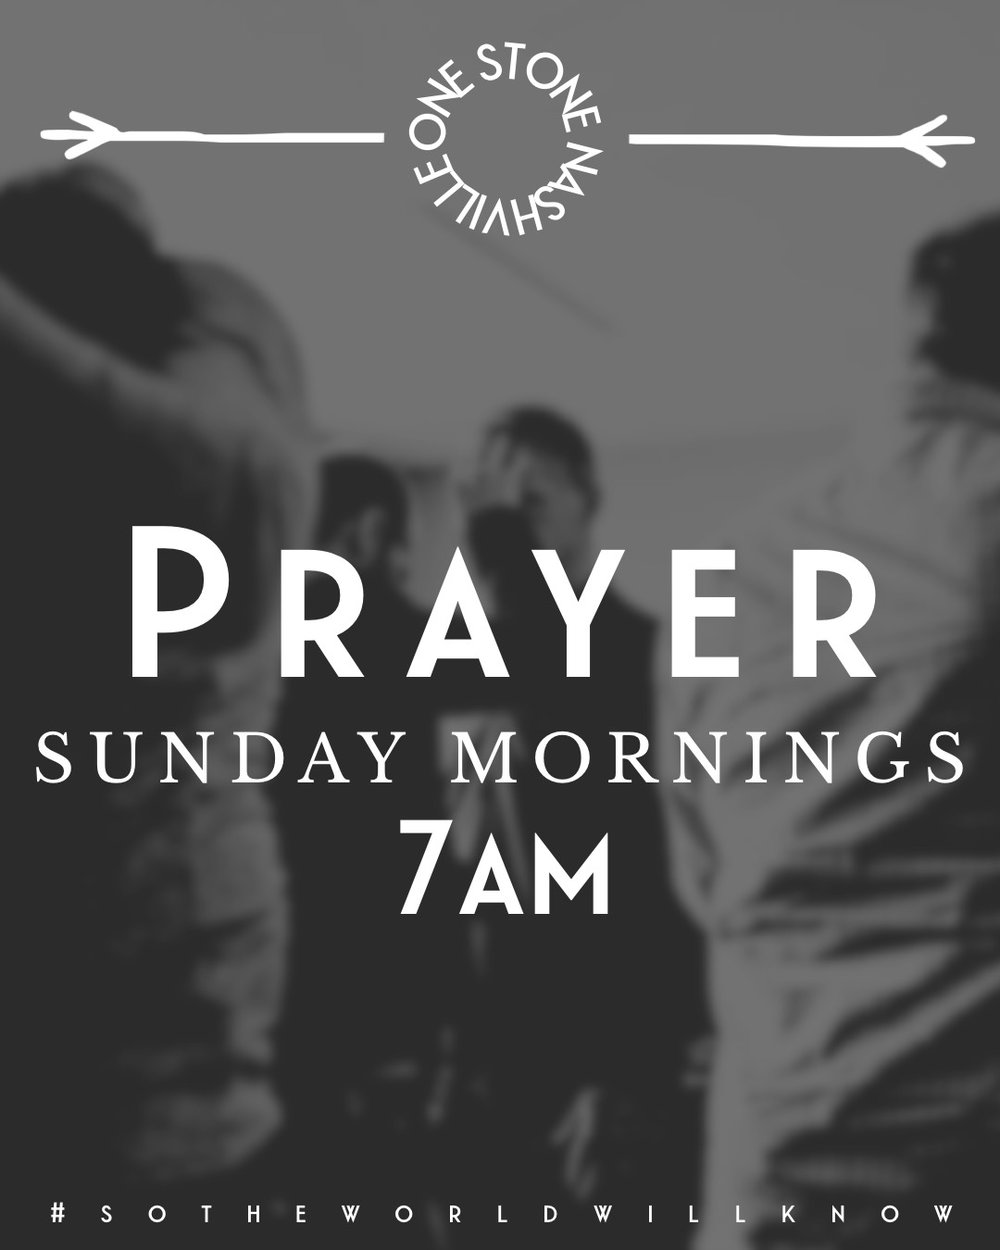 Prayer - Join us this week, 7:00AM at One Stone as we spend time praying and interceding for the hearts of those who will be attending the service, as well as our community. It's a powerful time you don't want to miss!